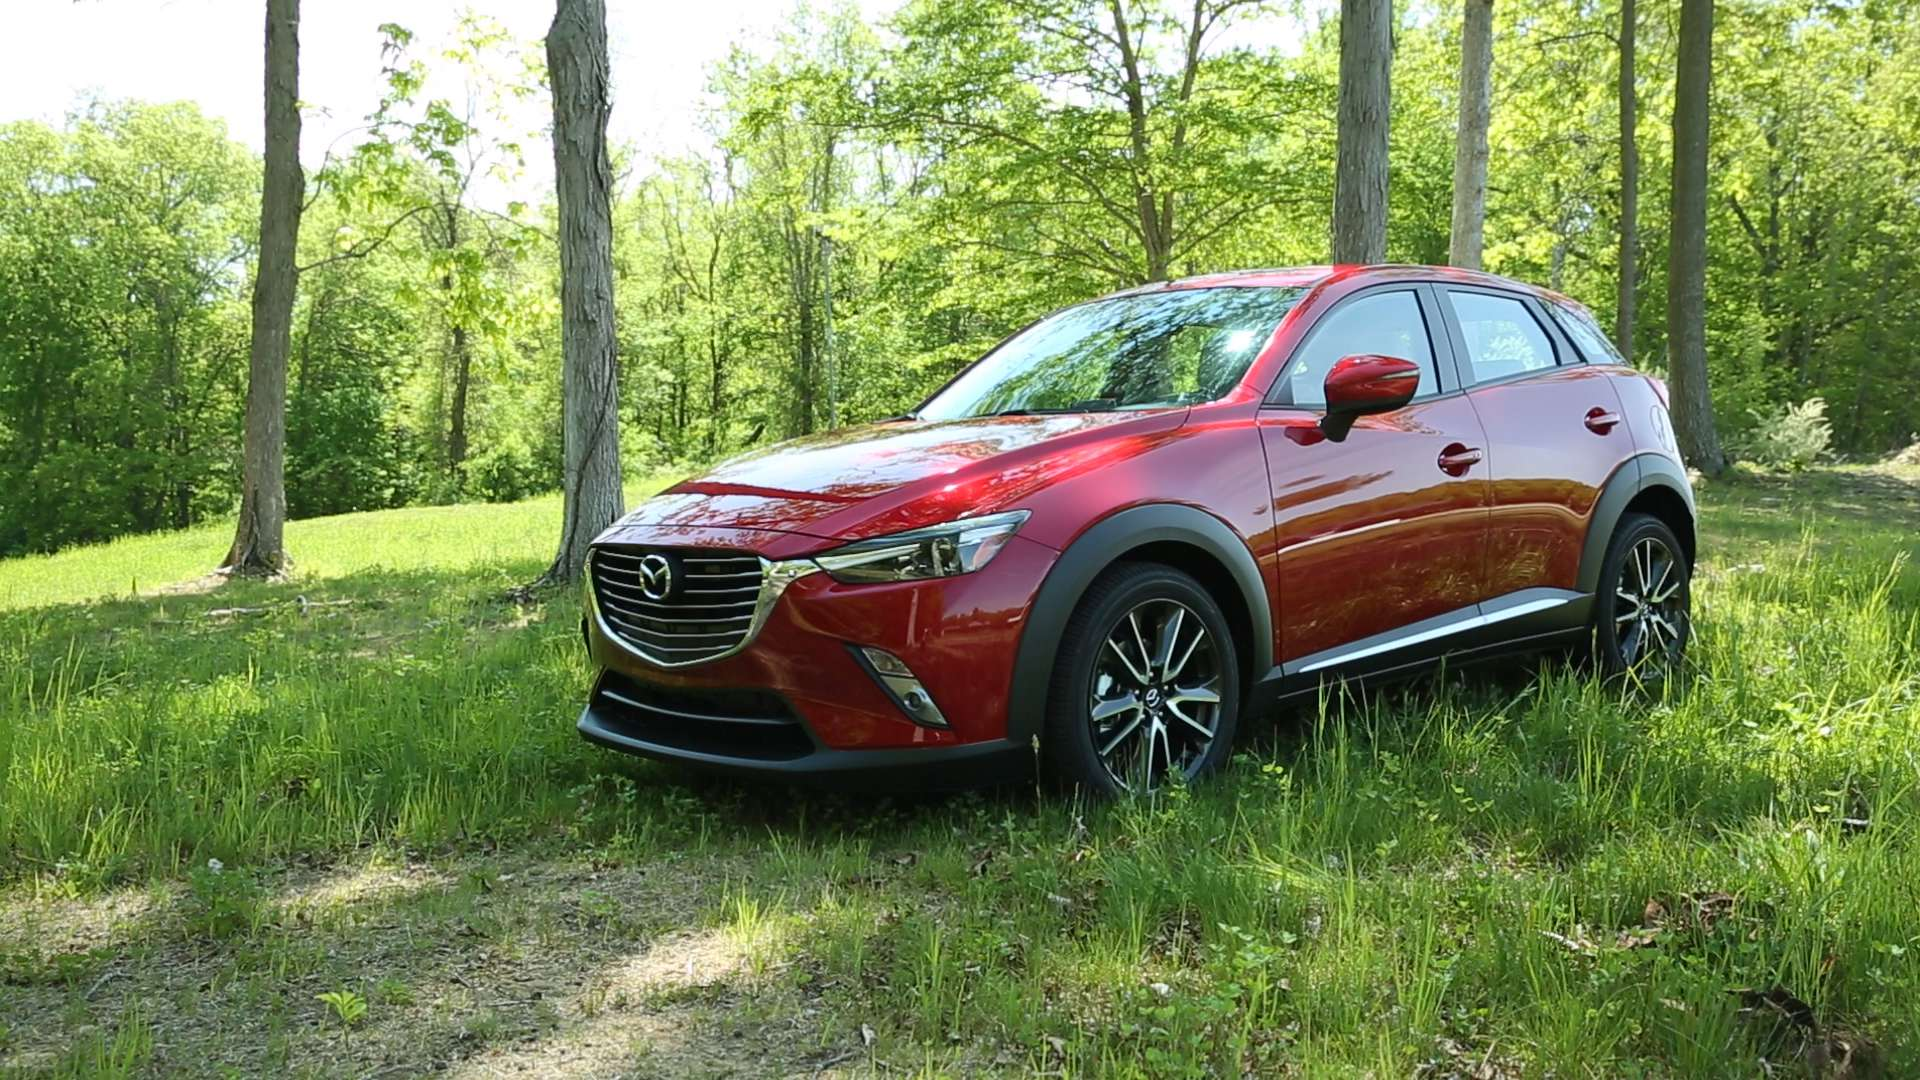 2017 mazda cx 3 grand touring review australia cars for you - The Video Connection Was Lost Please Confirm You Are Connected To The Internet